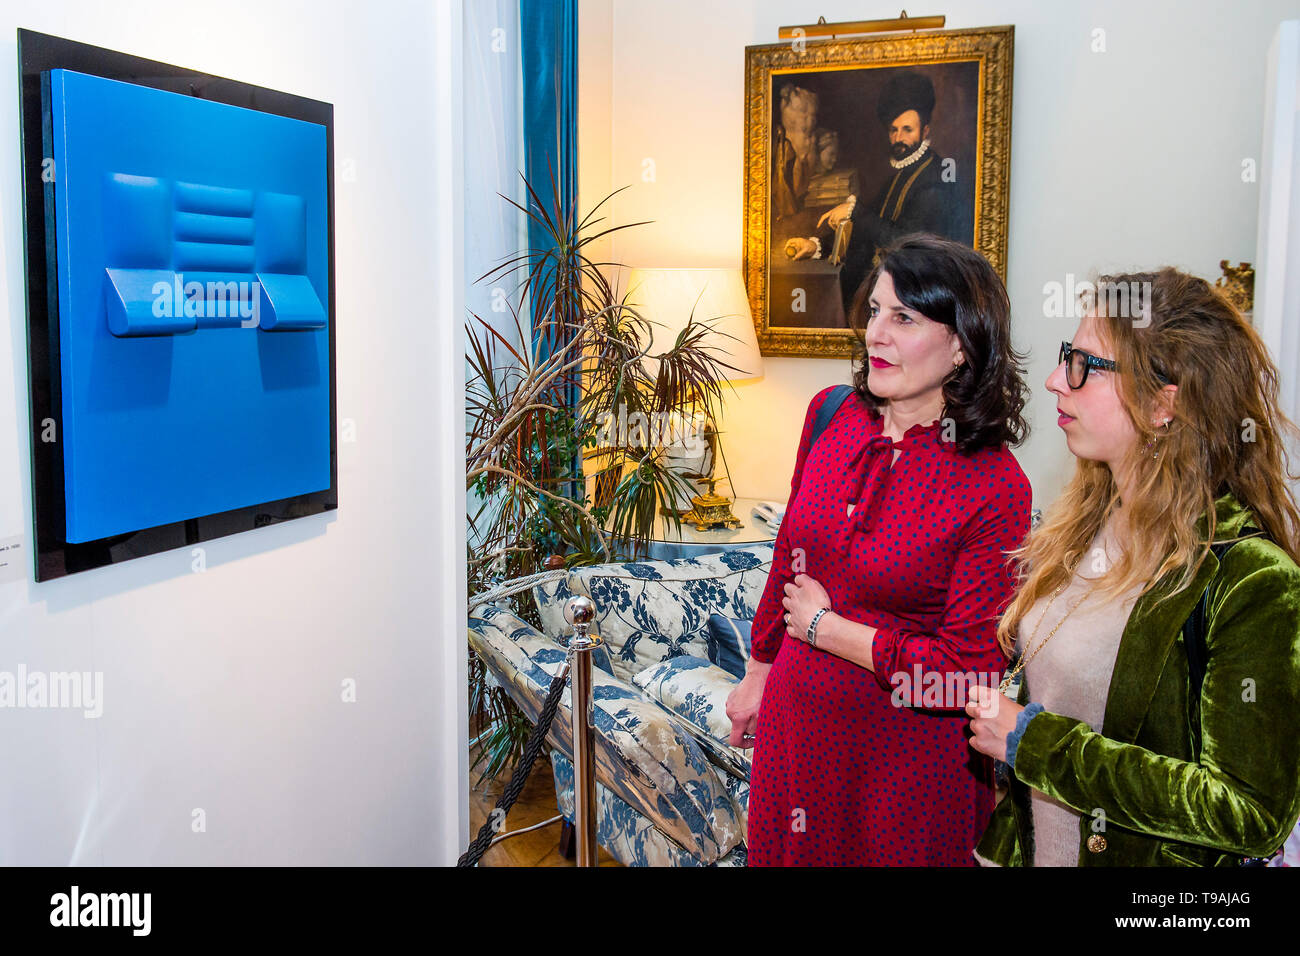 London, UK. 16th May 2019. Blu, 1966, by Agostino Bonalumi - The launch party for Spaziale! at Opera Gallery London at the Italian Embassy.The exhibition includes 40 iconic canvases by Lucio Fontana, Agostino Bonalumi and Enrico Castellani among others. Credit: Guy Bell/Alamy Live News - Stock Image